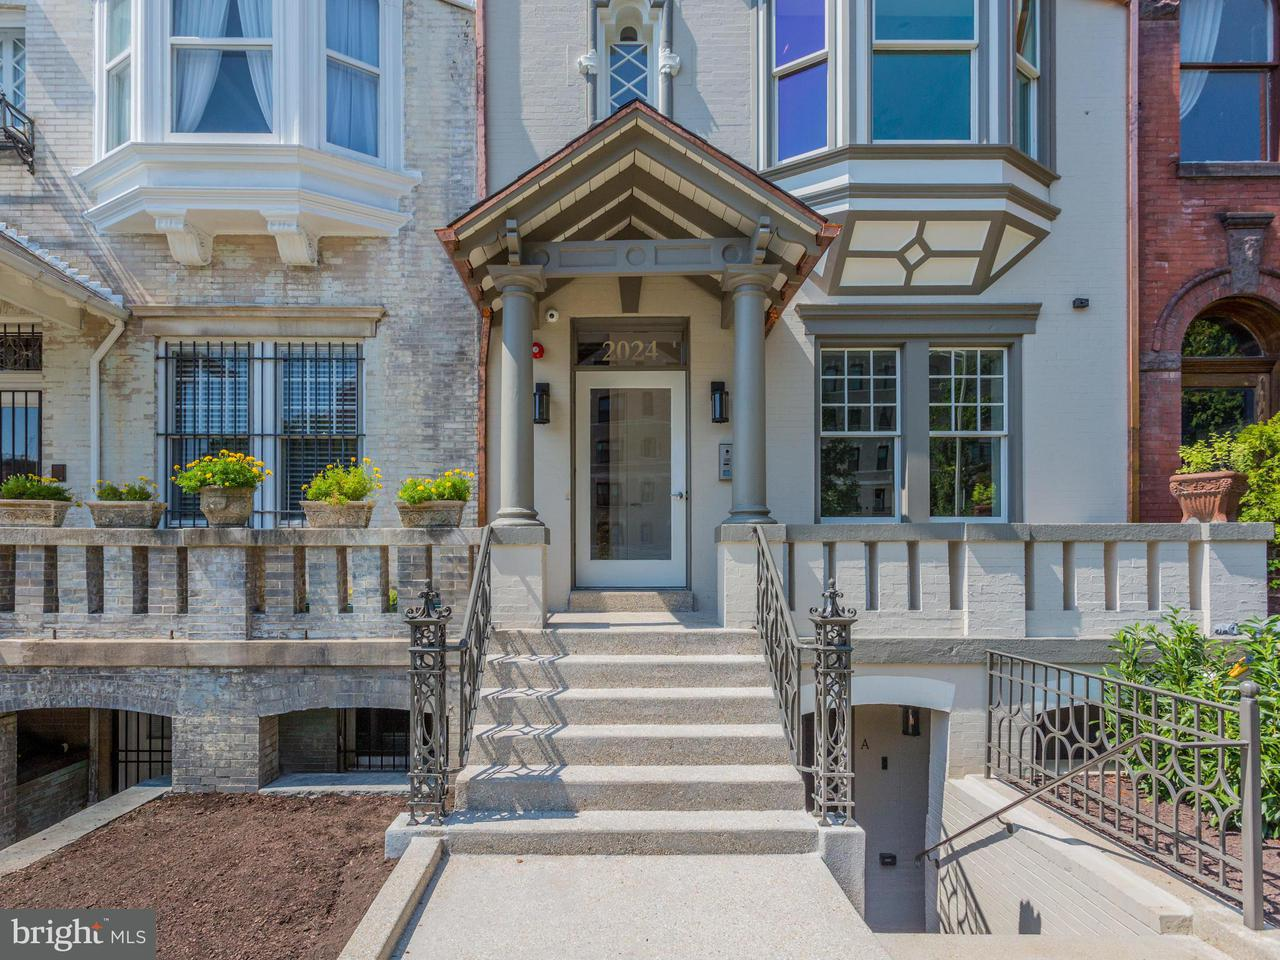 Townhouse for Sale at 2024 16TH ST NW #2 2024 16TH ST NW #2 Washington, District Of Columbia 20009 United States